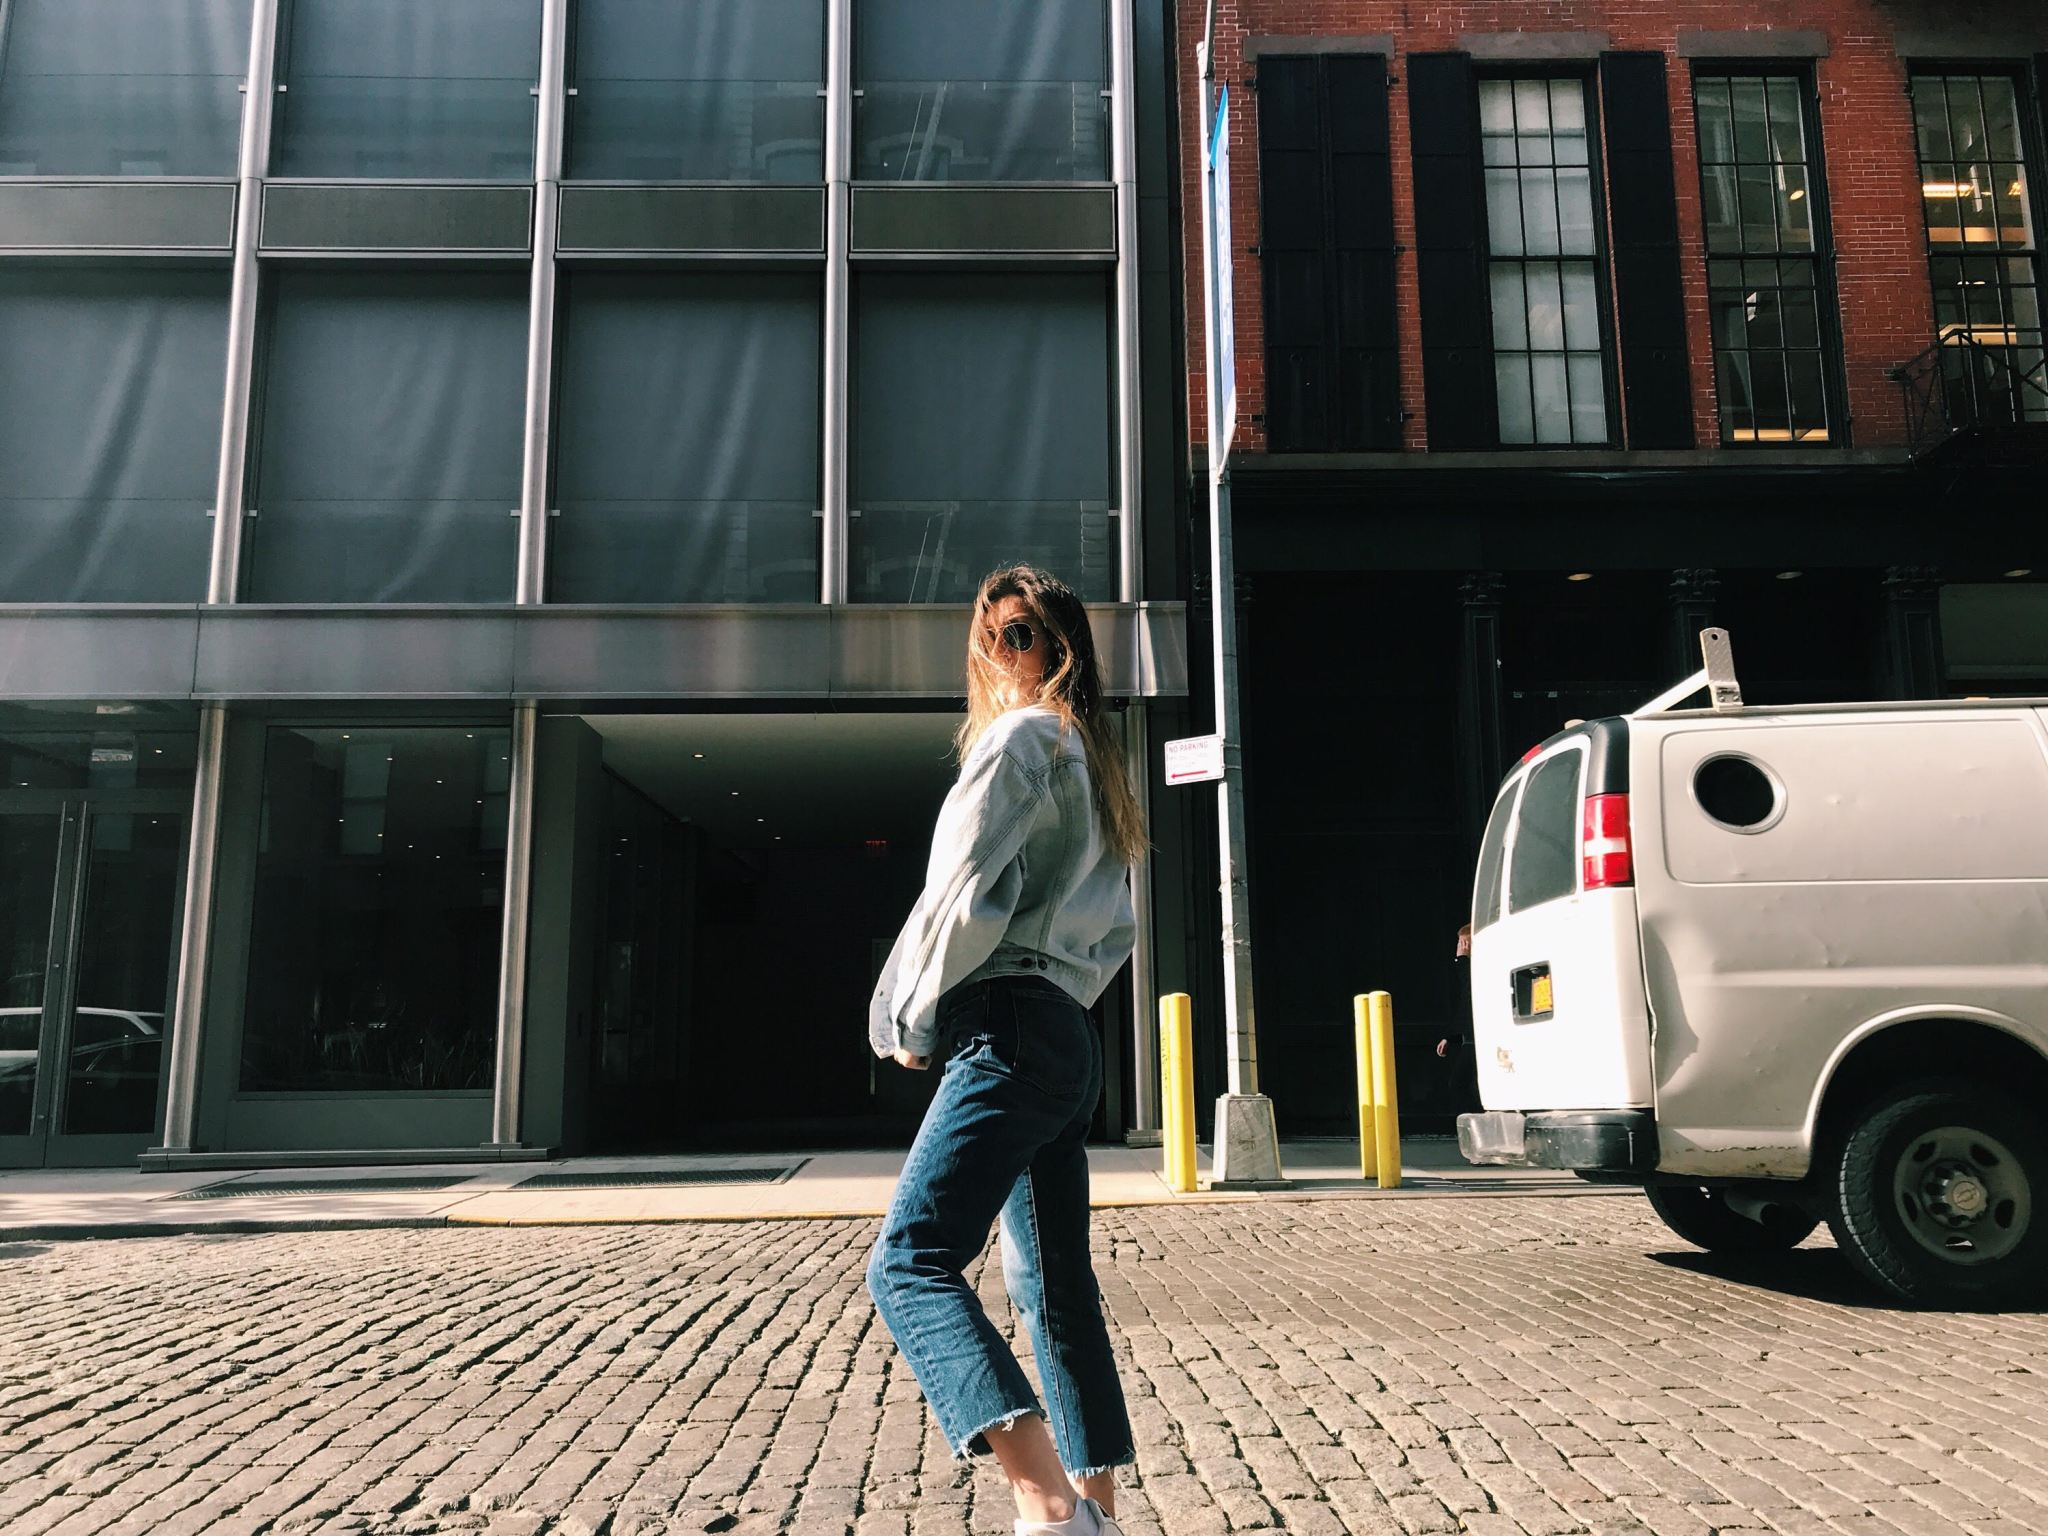 wearing jeans and jean jacket in streets of soho